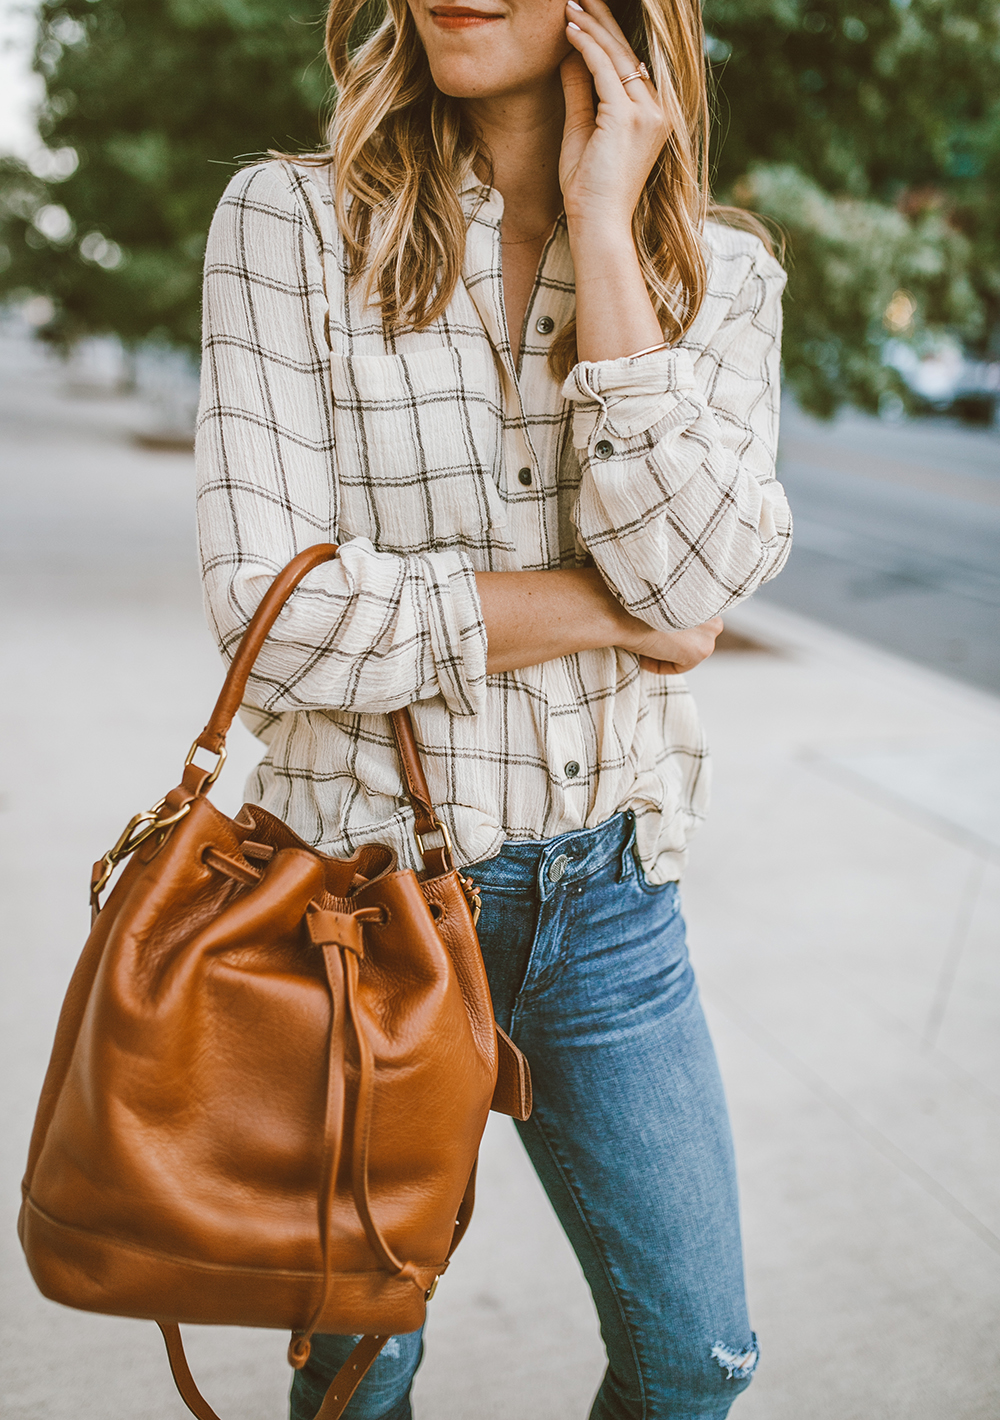 livvyland-blog-olivia-watson-austin-texas-fashion-style-blogger-nordstrom-anniversary-sale-5